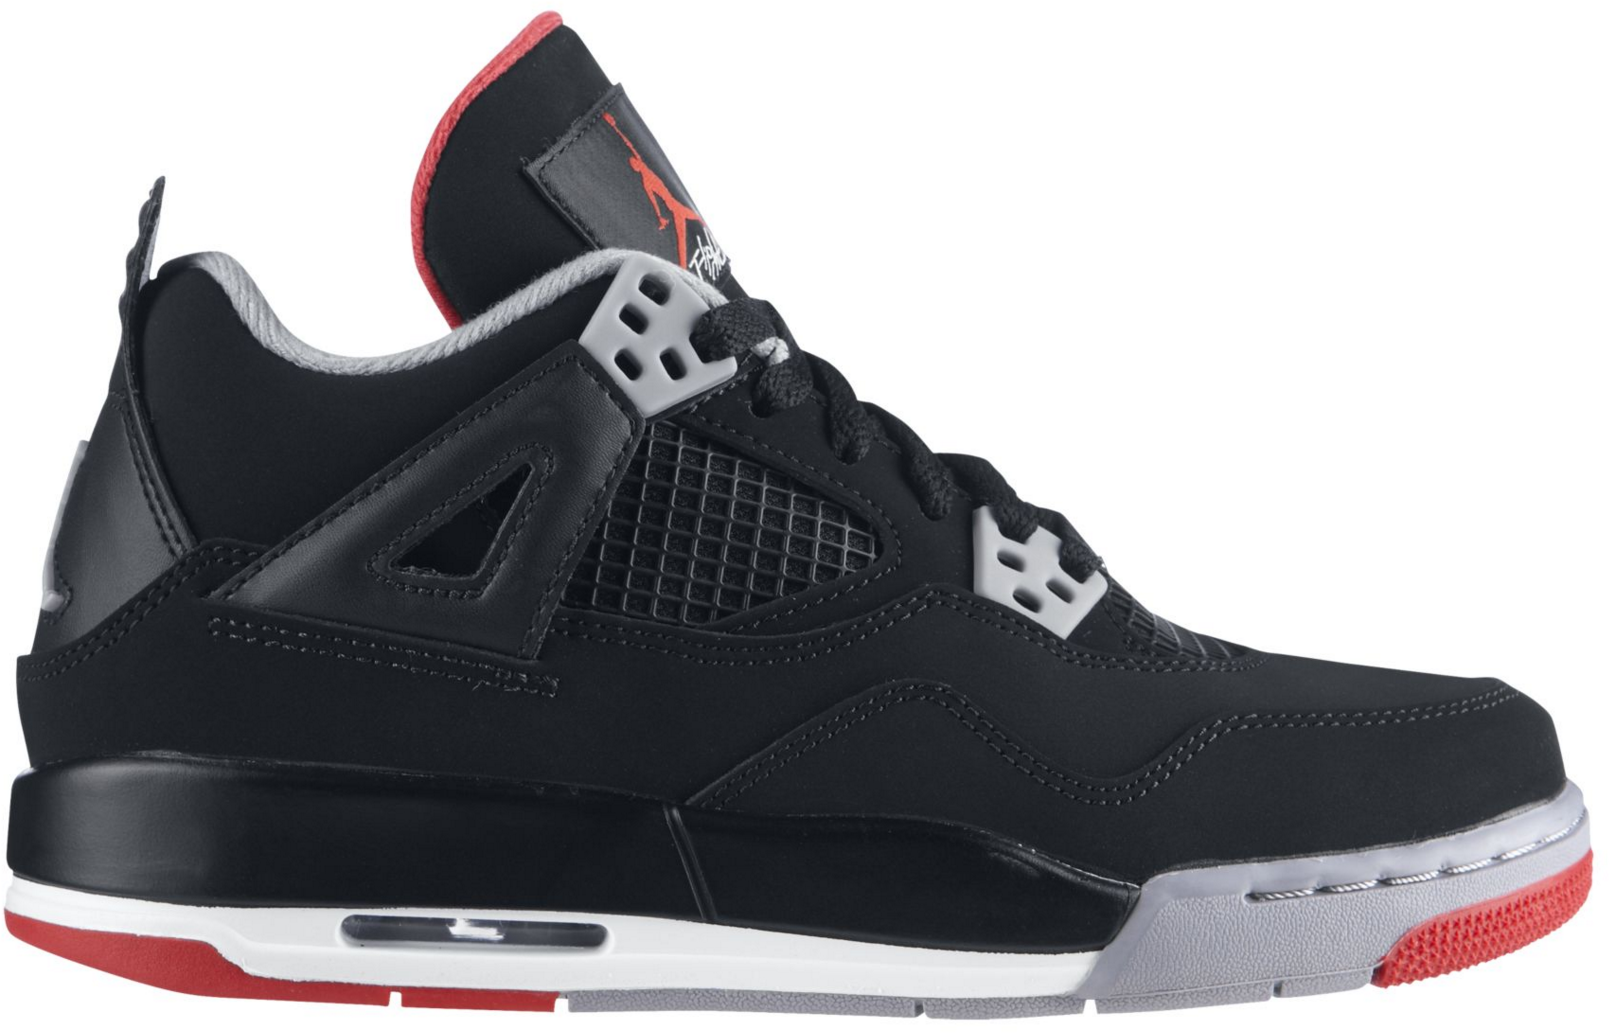 Jordan 4 Retro Black Cement 2012 (GS)